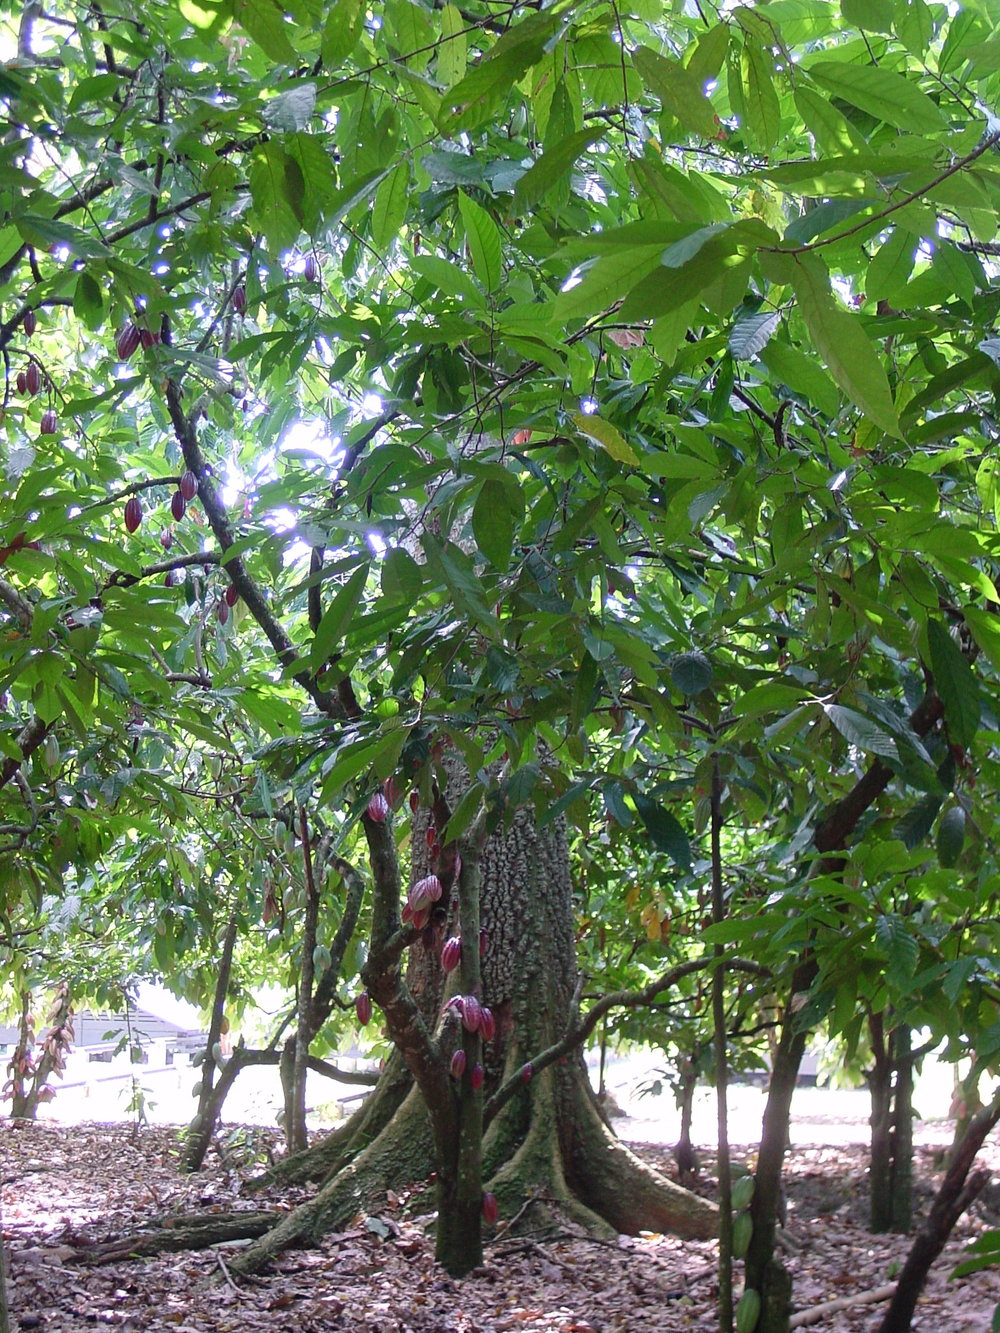 Cocoa tree growing under the shade of a larger tree. Photo courtesy the World Cocoa Foundation.